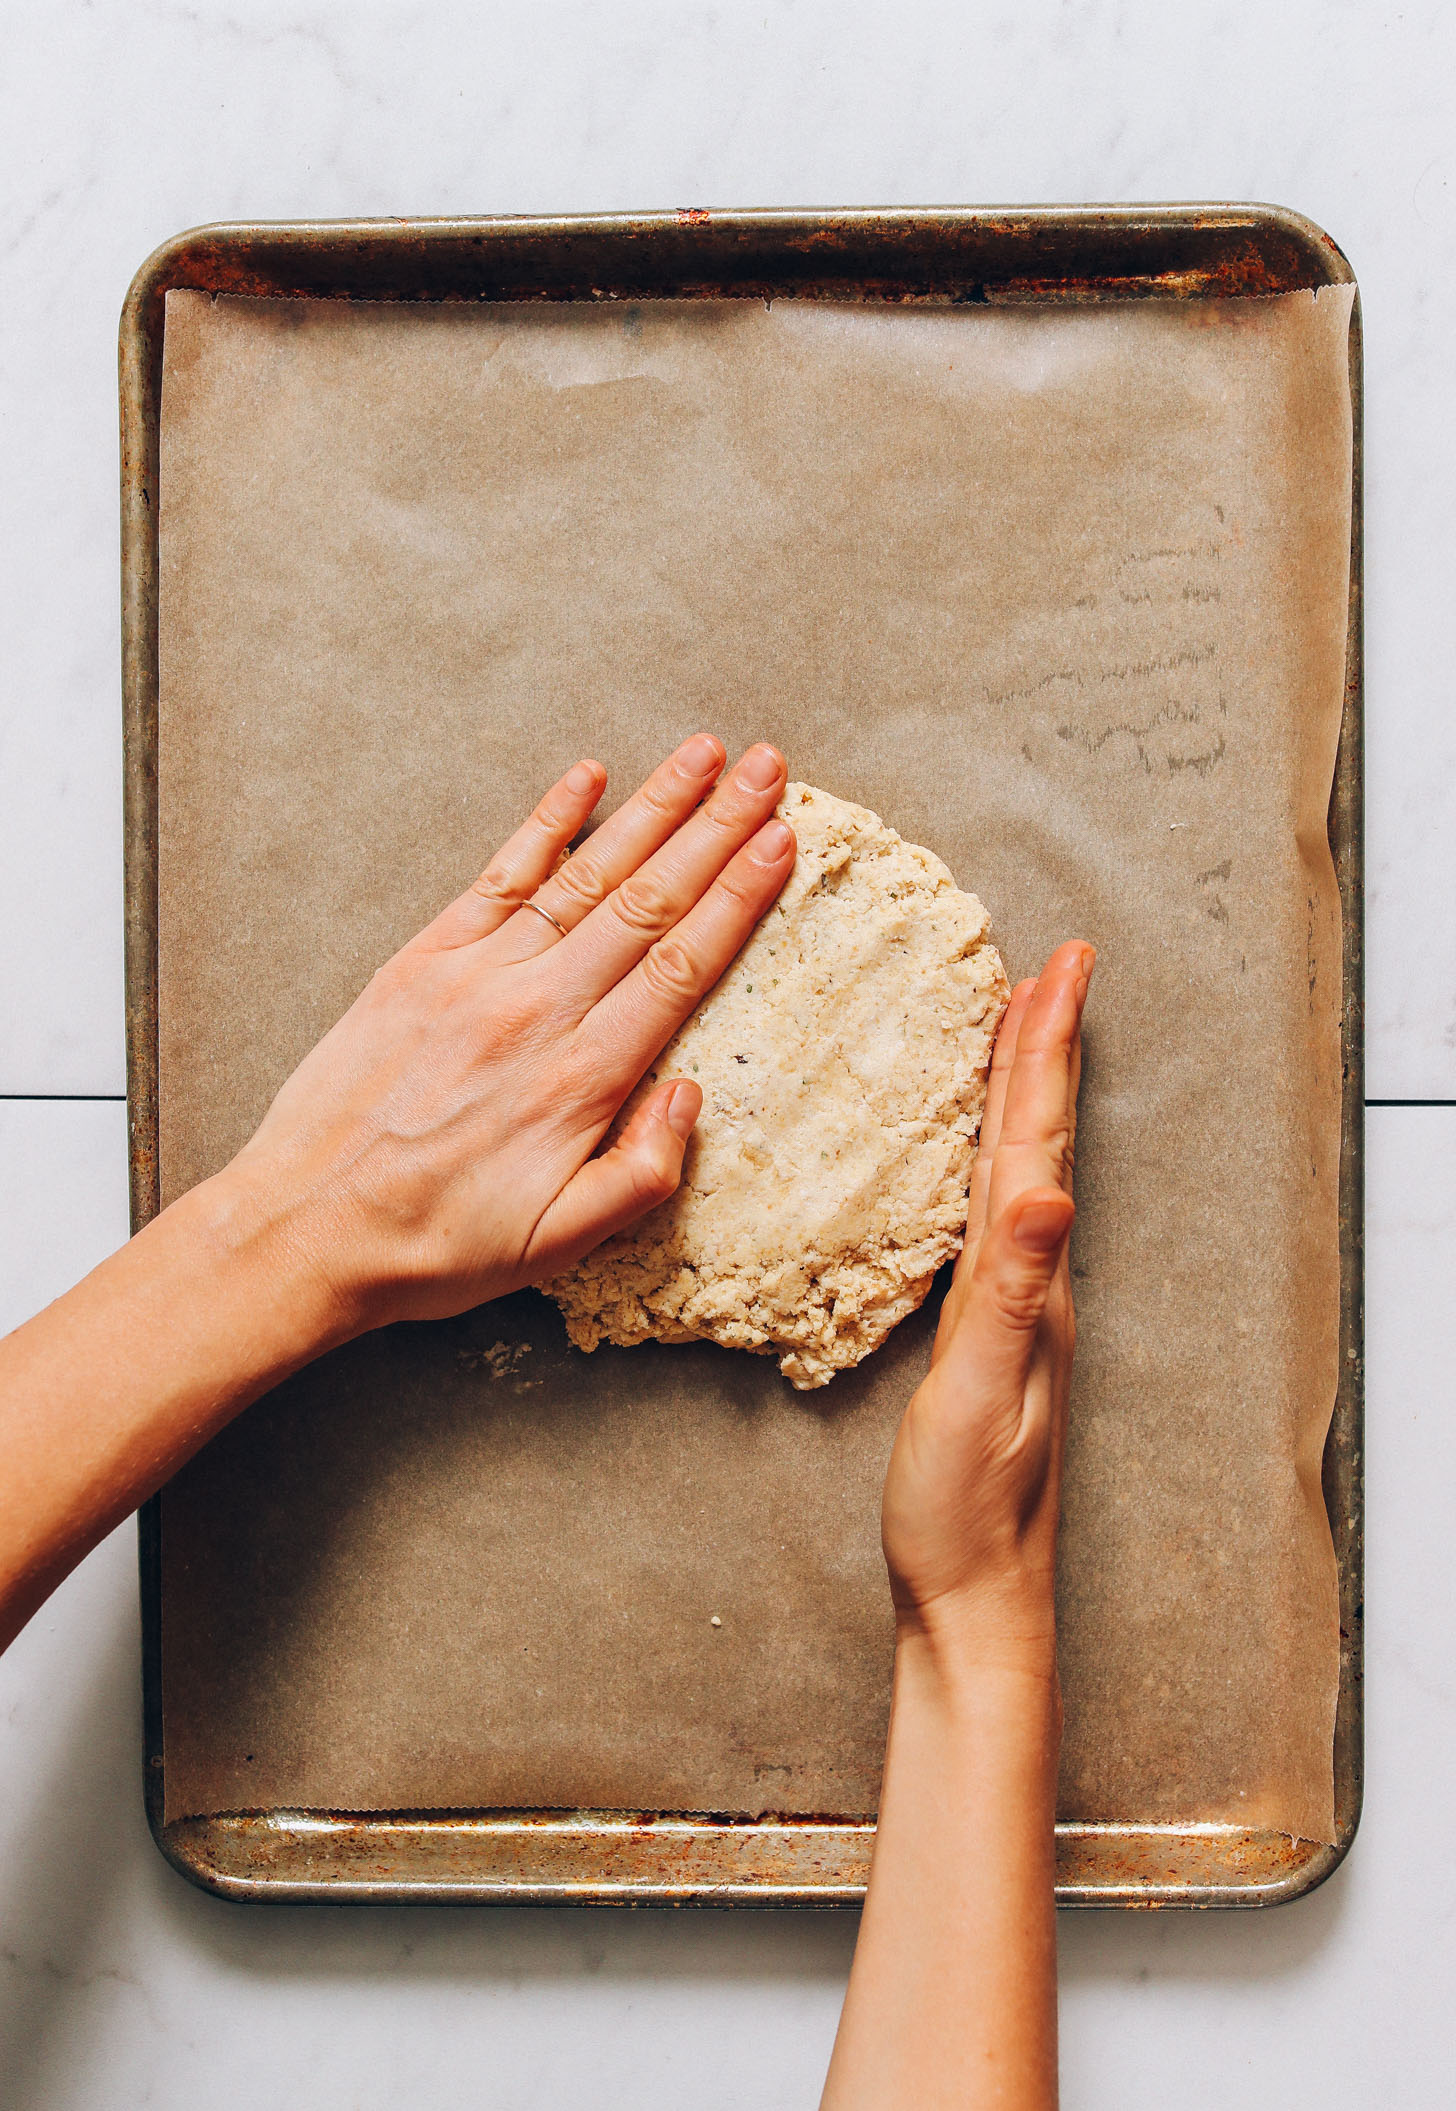 Shaping vegan gluten-free pizza dough on a baking sheet